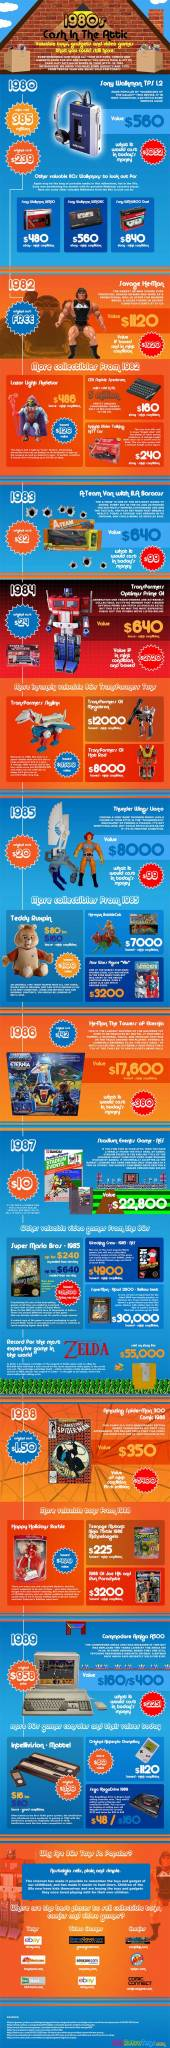 value of old toys infographic